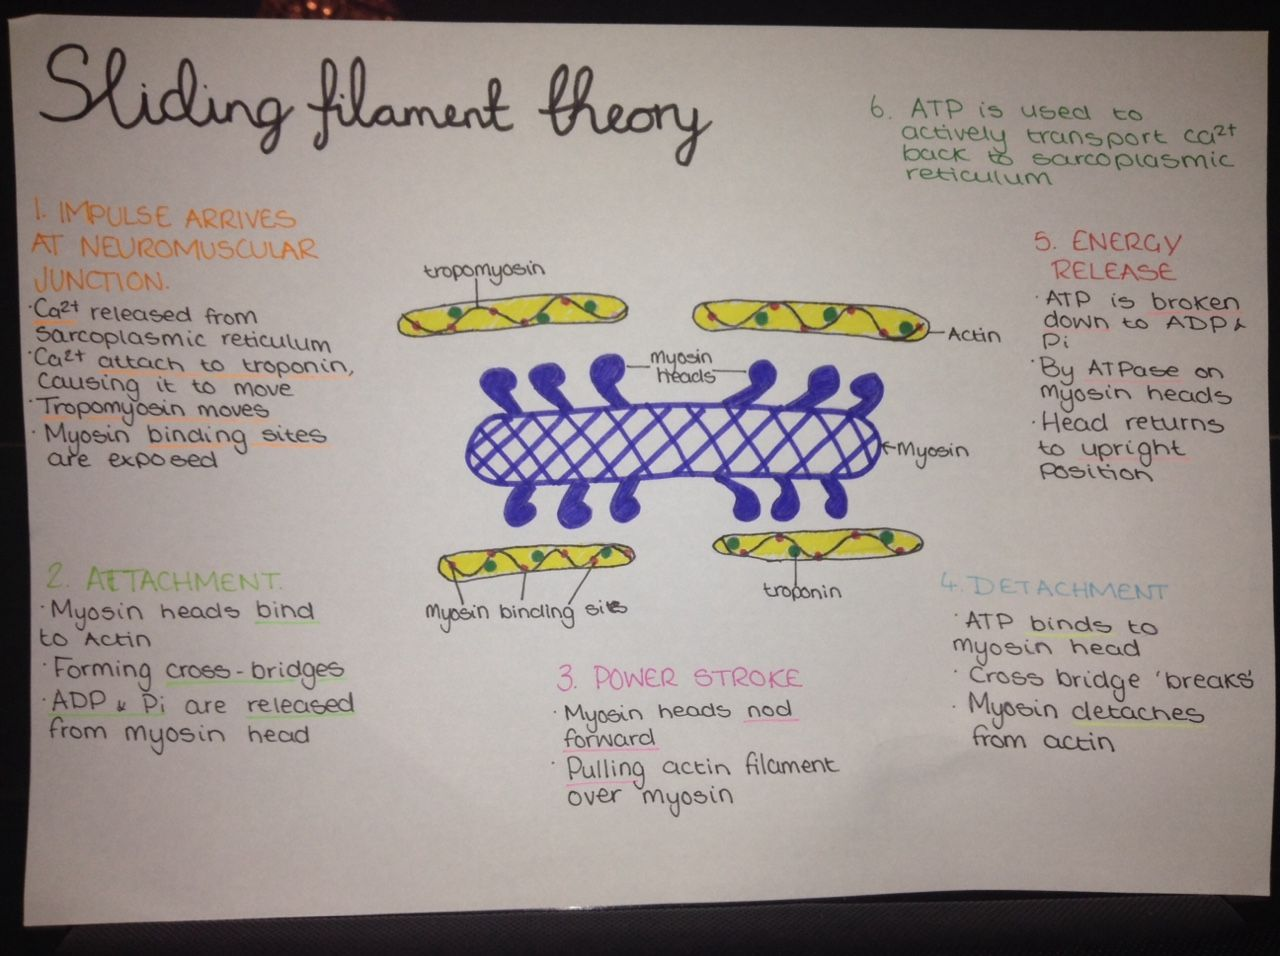 Thefatstudent 9 32pm Sliding Filament Theory Of Muscle